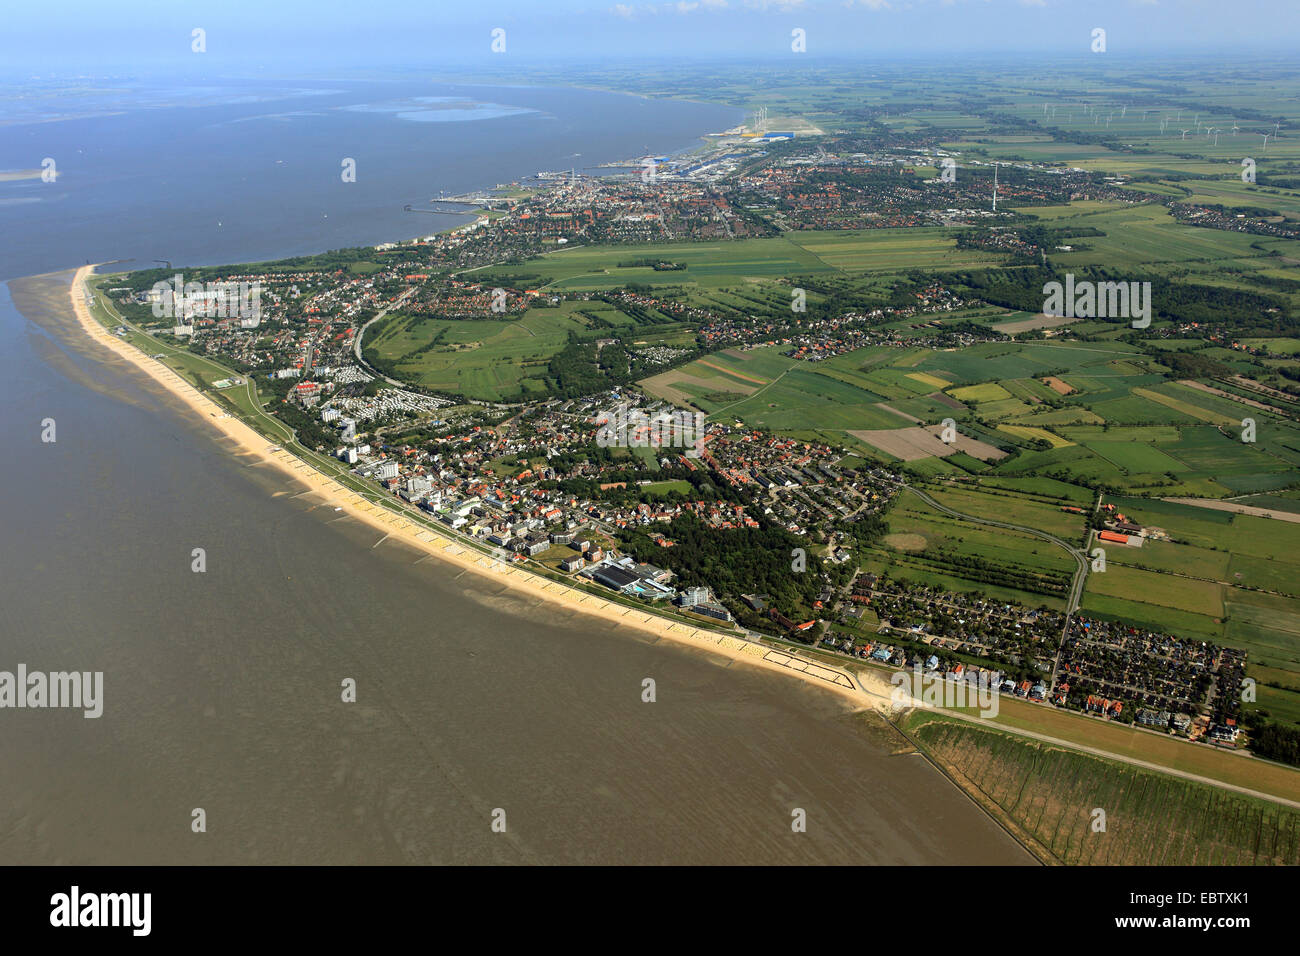 Cuxhaven and river mouth of Elbe, Germany, Lower Saxony, Cuxhaven - Stock Image